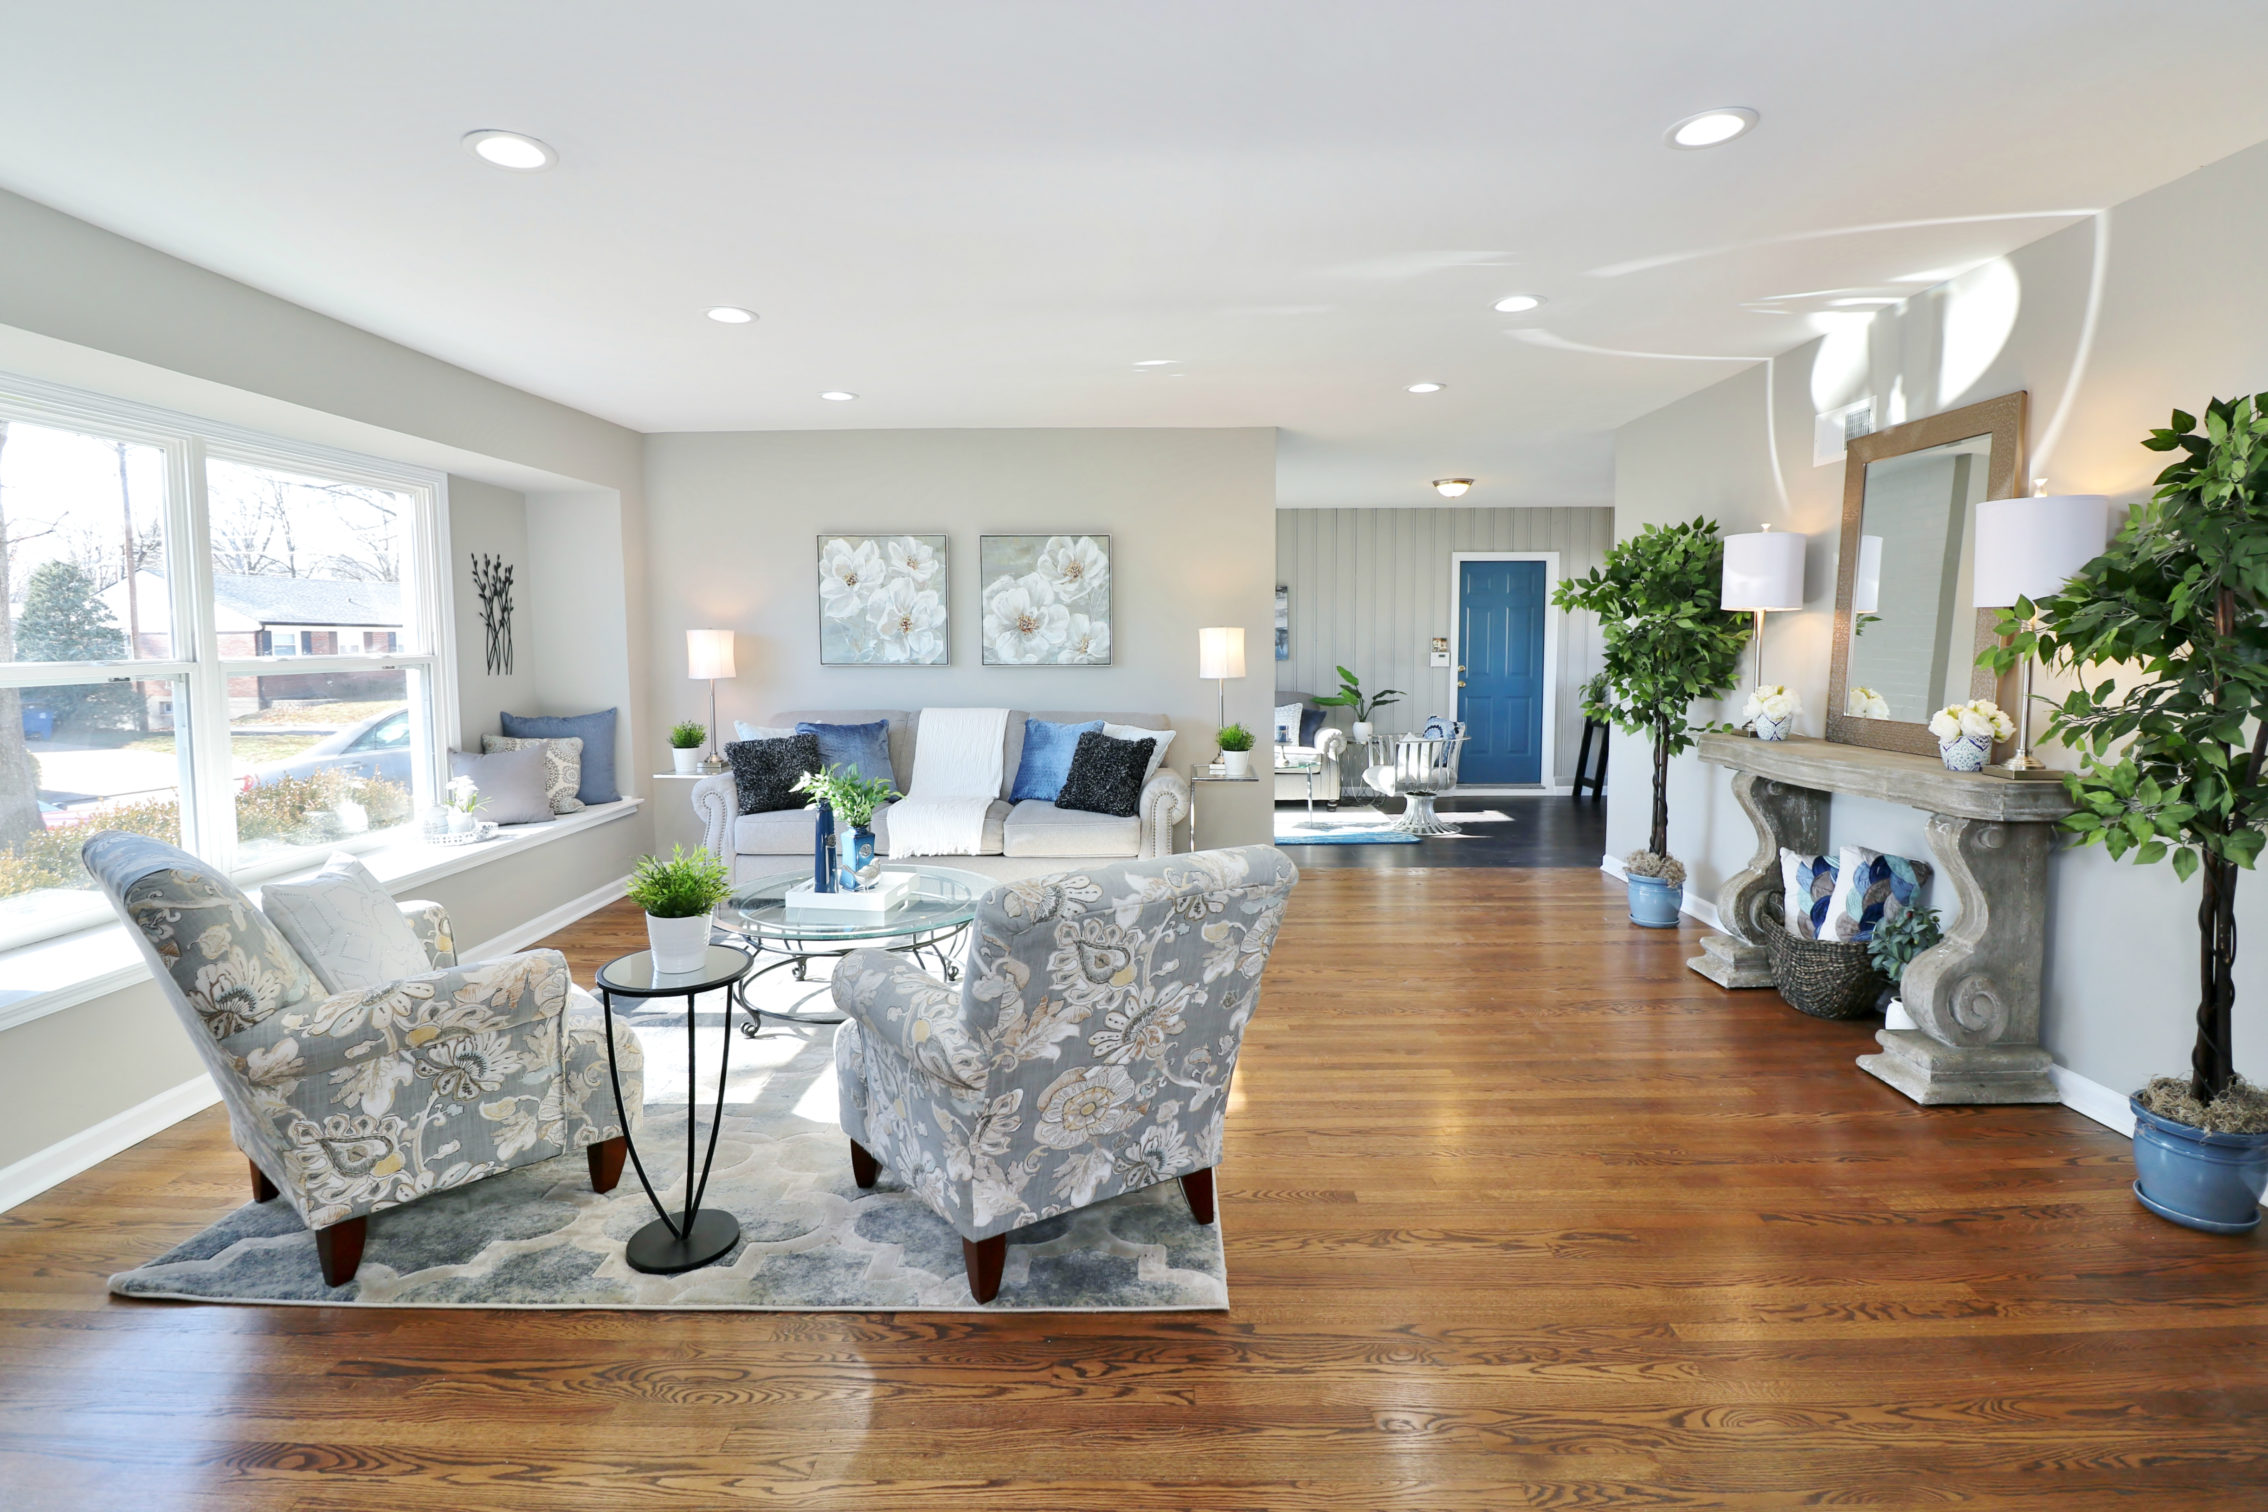 Staged home in University City, MO. Winter decorating ideas